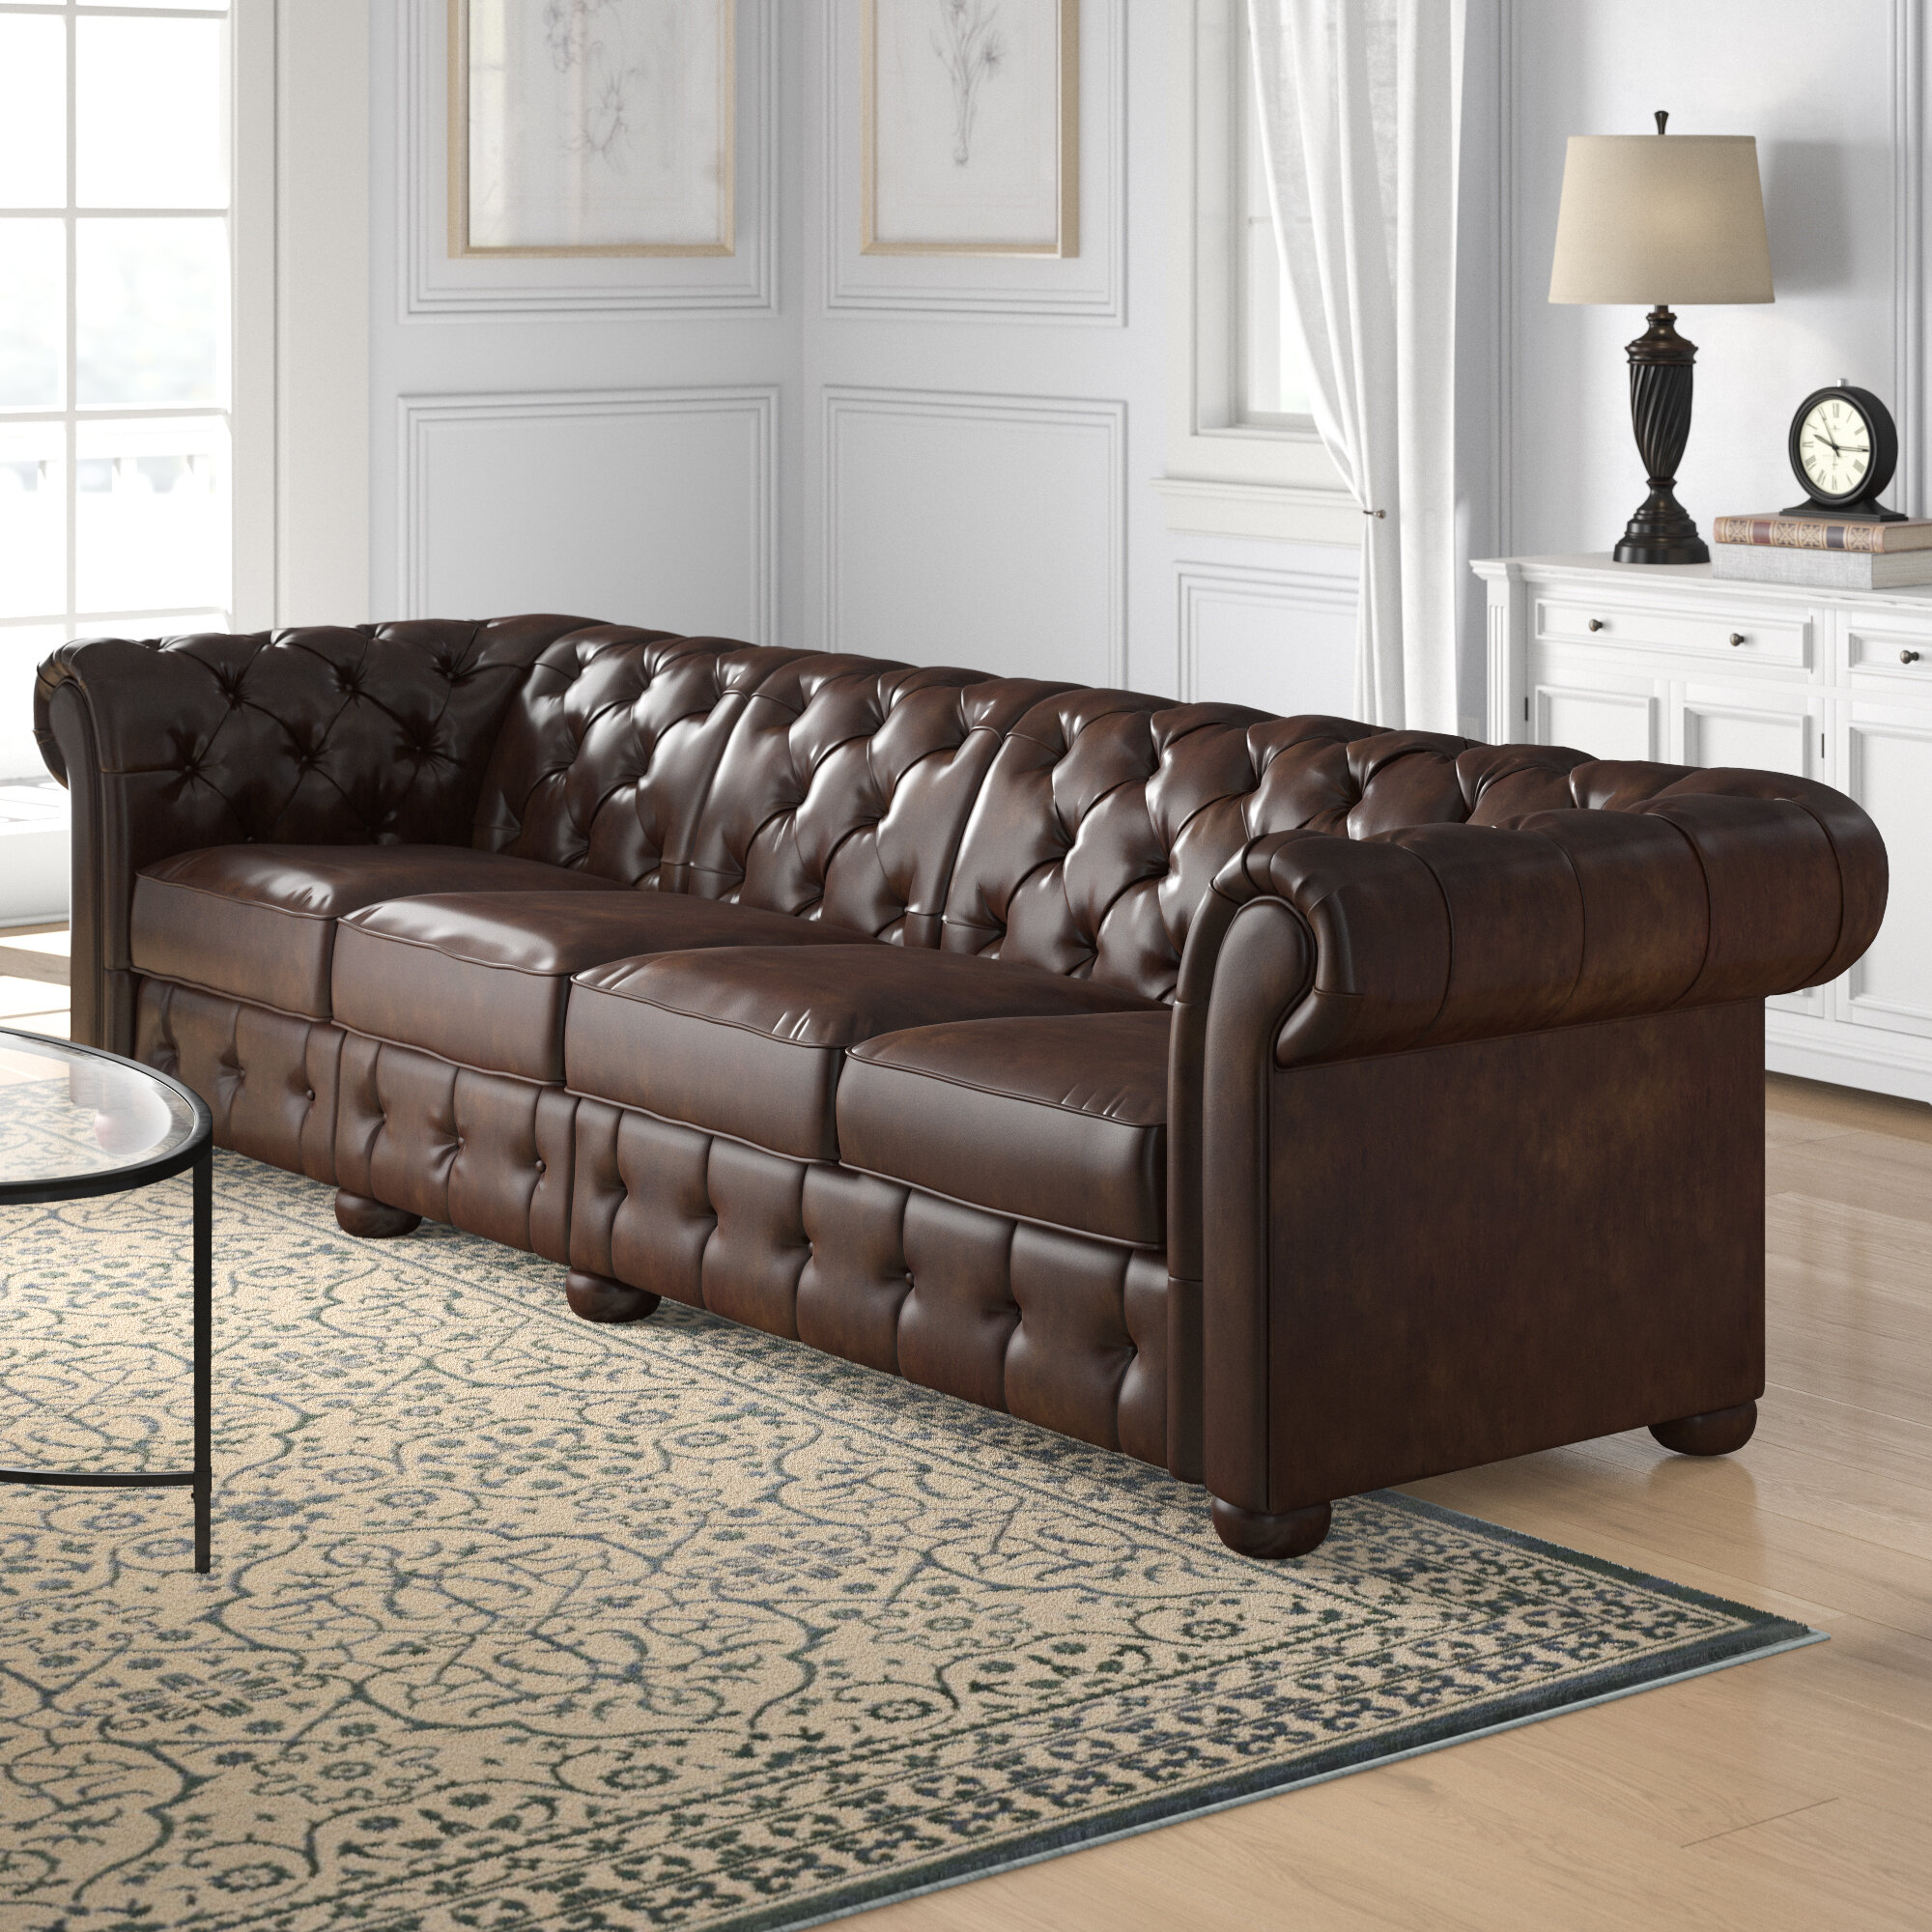 Three Posts Gowans Traditional 4 Seater Button Tufted Chesterfield